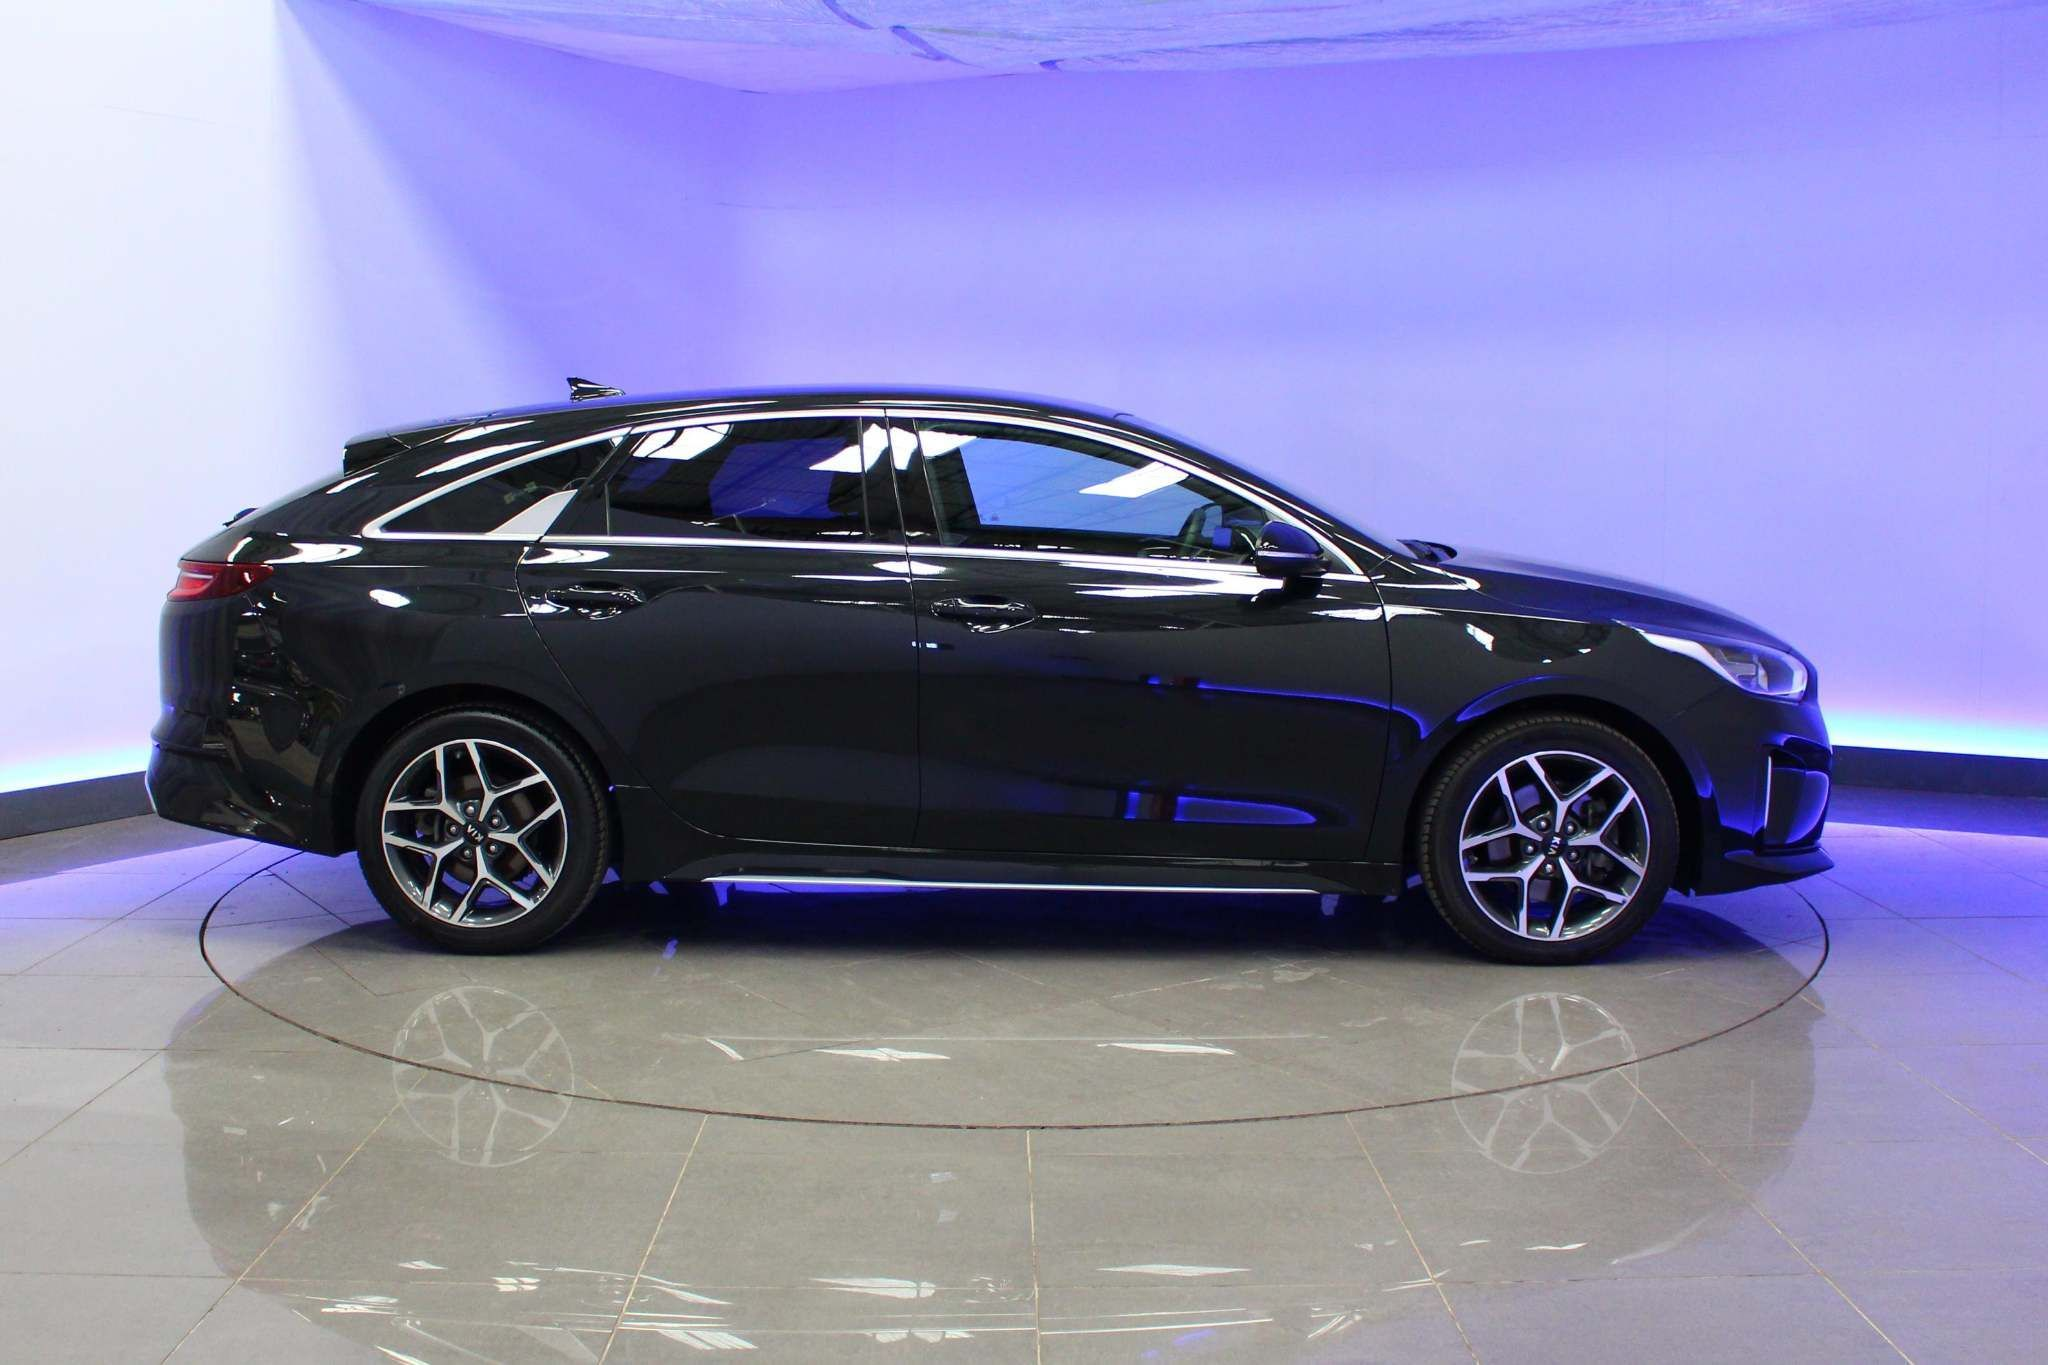 Used Kia Proceed 1.6 Crdi Gt-Line Shooting Brake Dct (s/s) 5dr